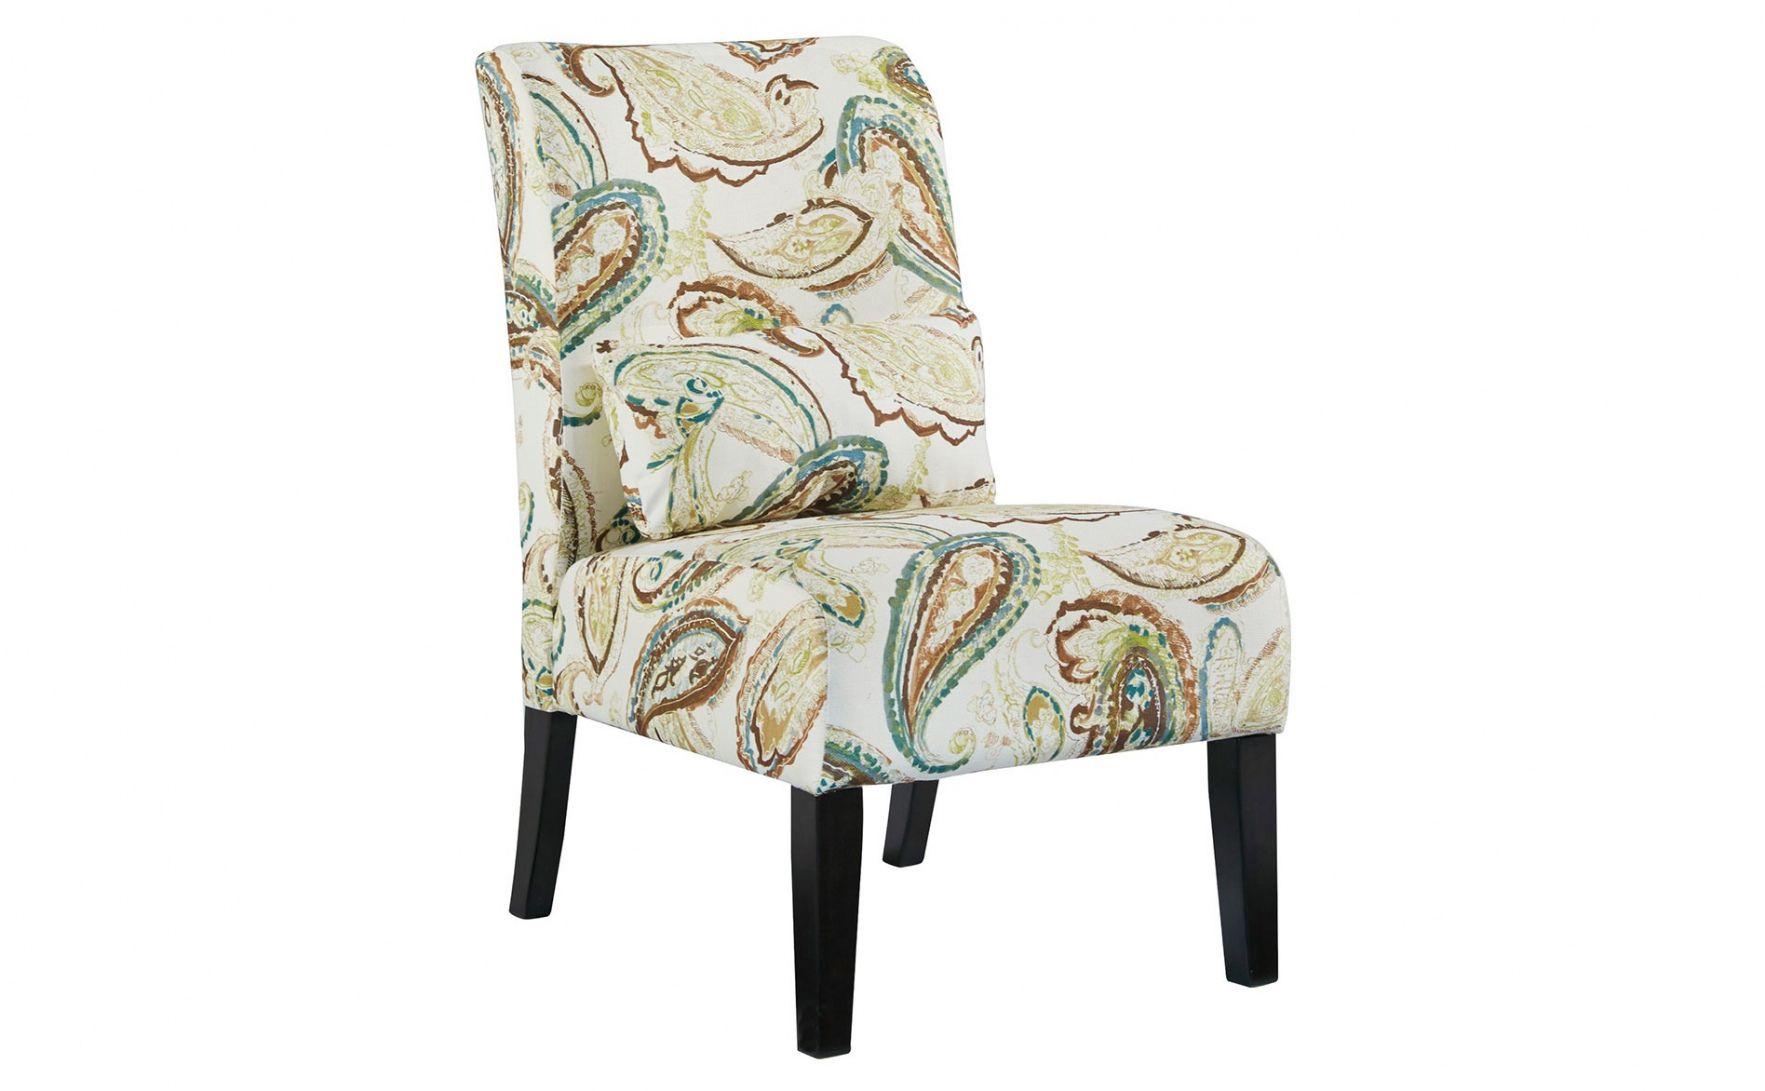 Charmant 50+ Clearance Accent Chair   Best Master Furniture Check More At Http://